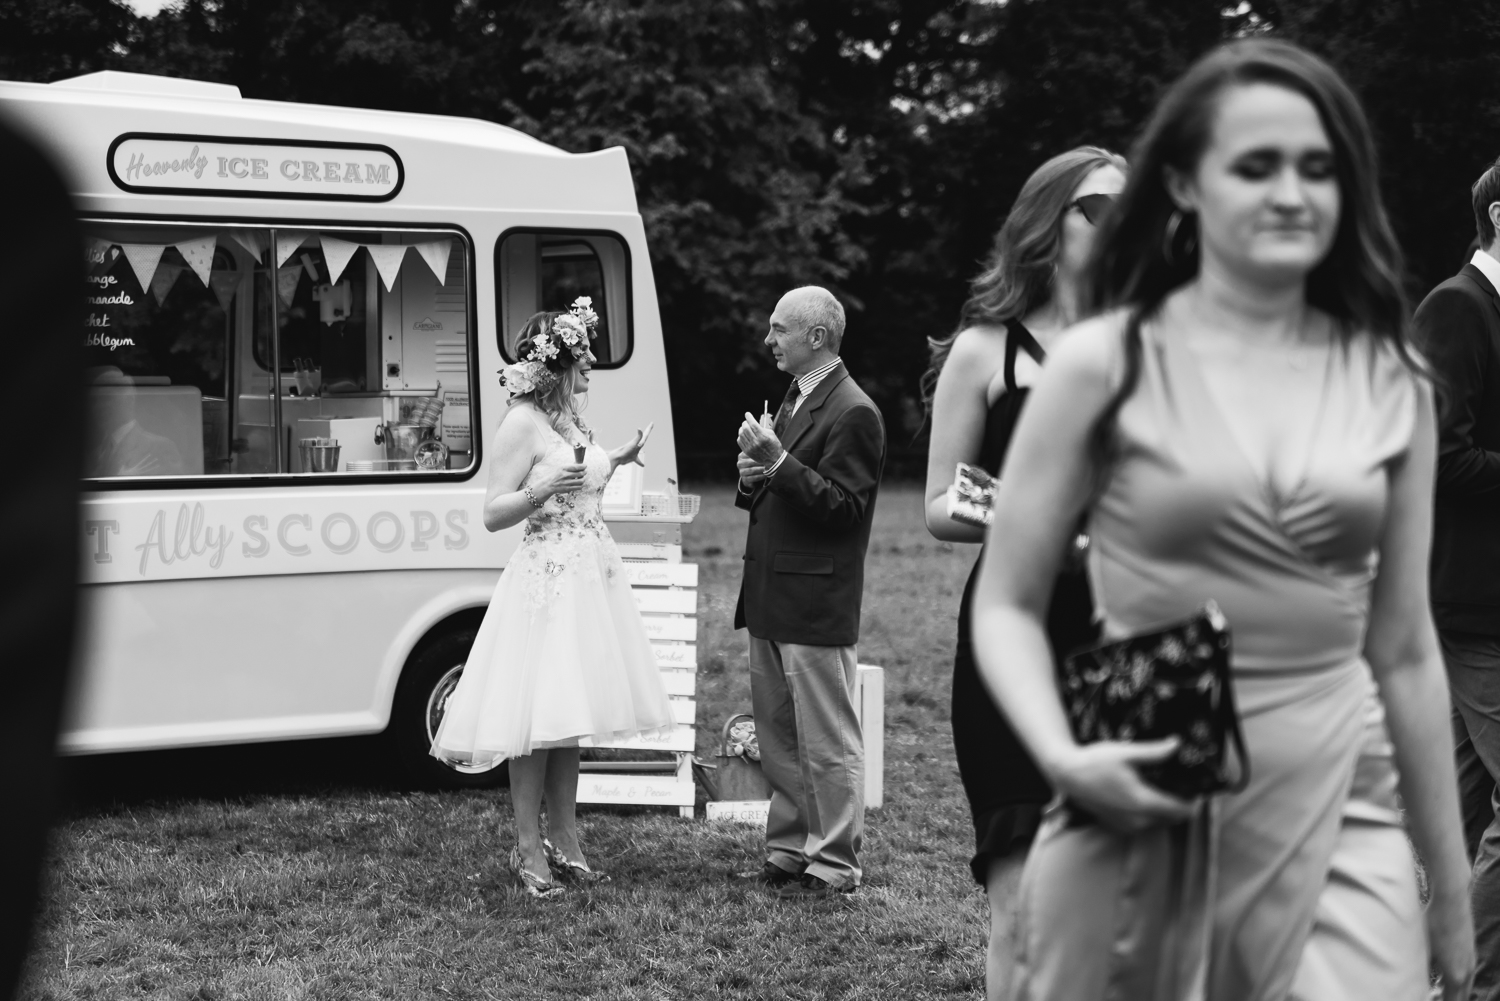 Wedding-Photographer-Cambridgeshire-Cambourne-Documentary-Alternative-Unposed.jpg